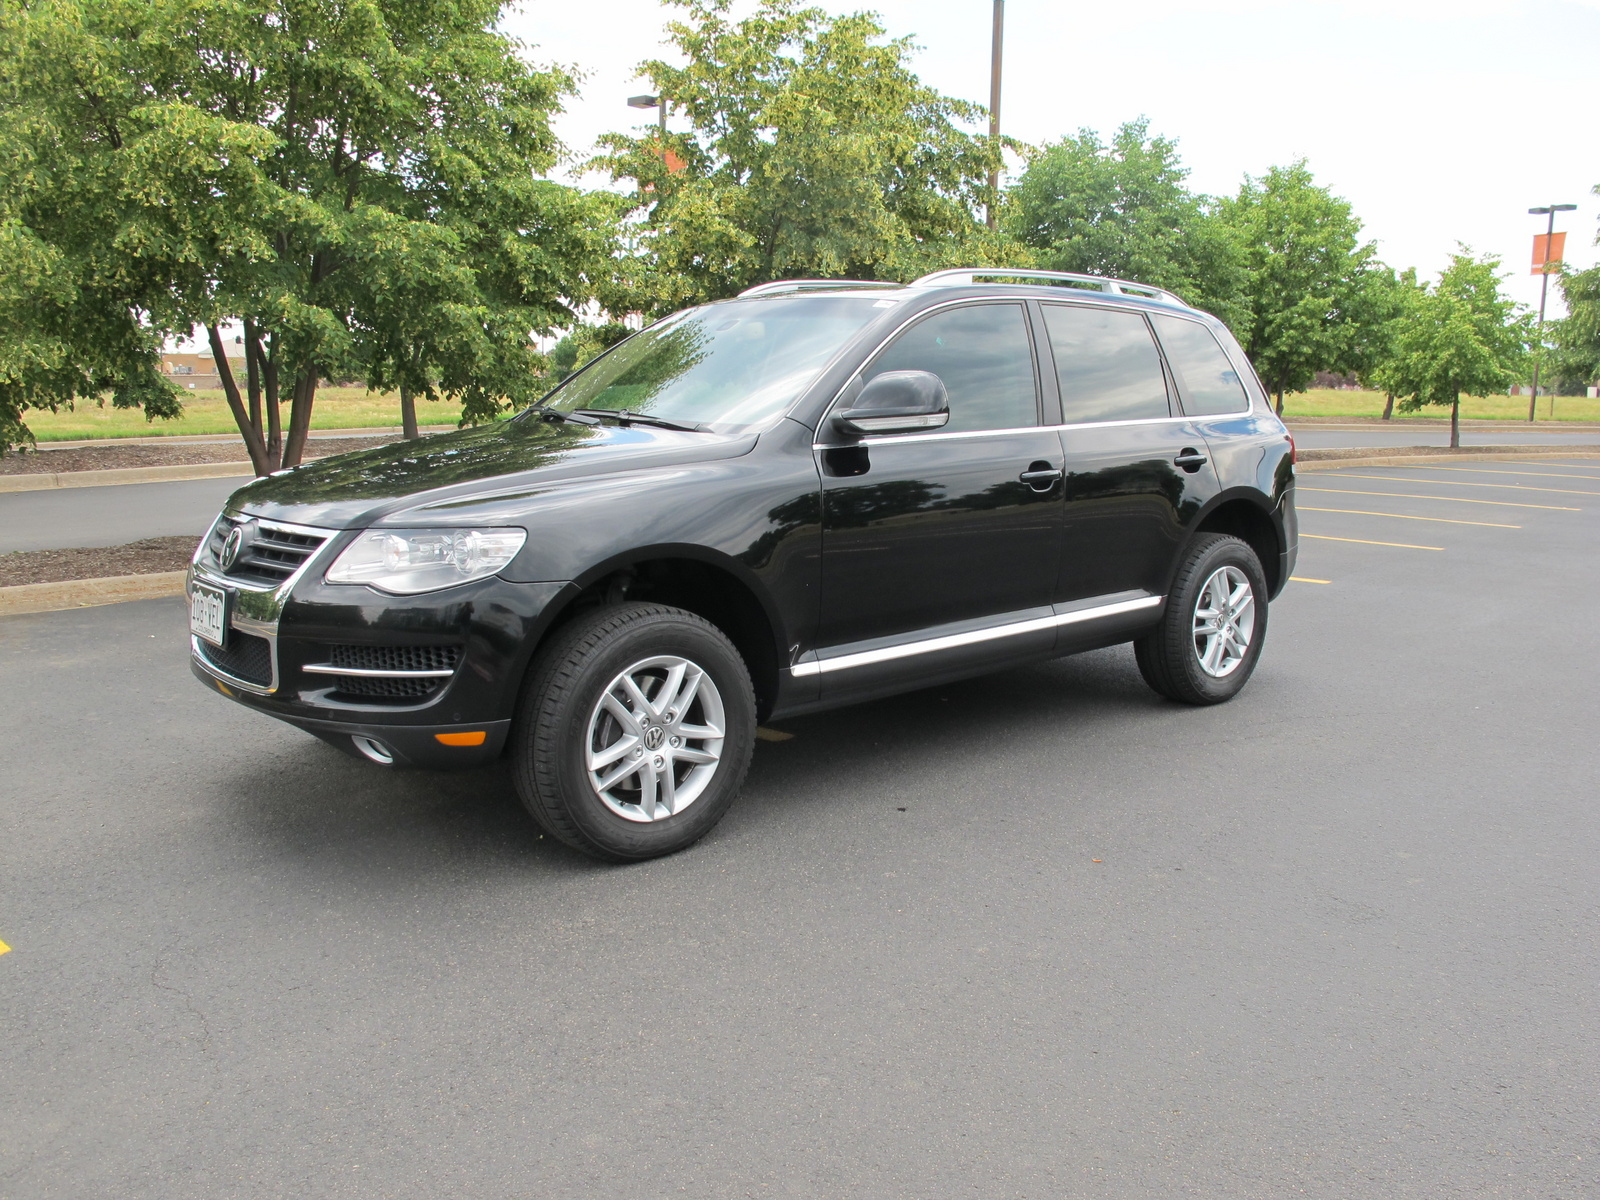 used volkswagen touareg for sale denver co cargurus. Black Bedroom Furniture Sets. Home Design Ideas